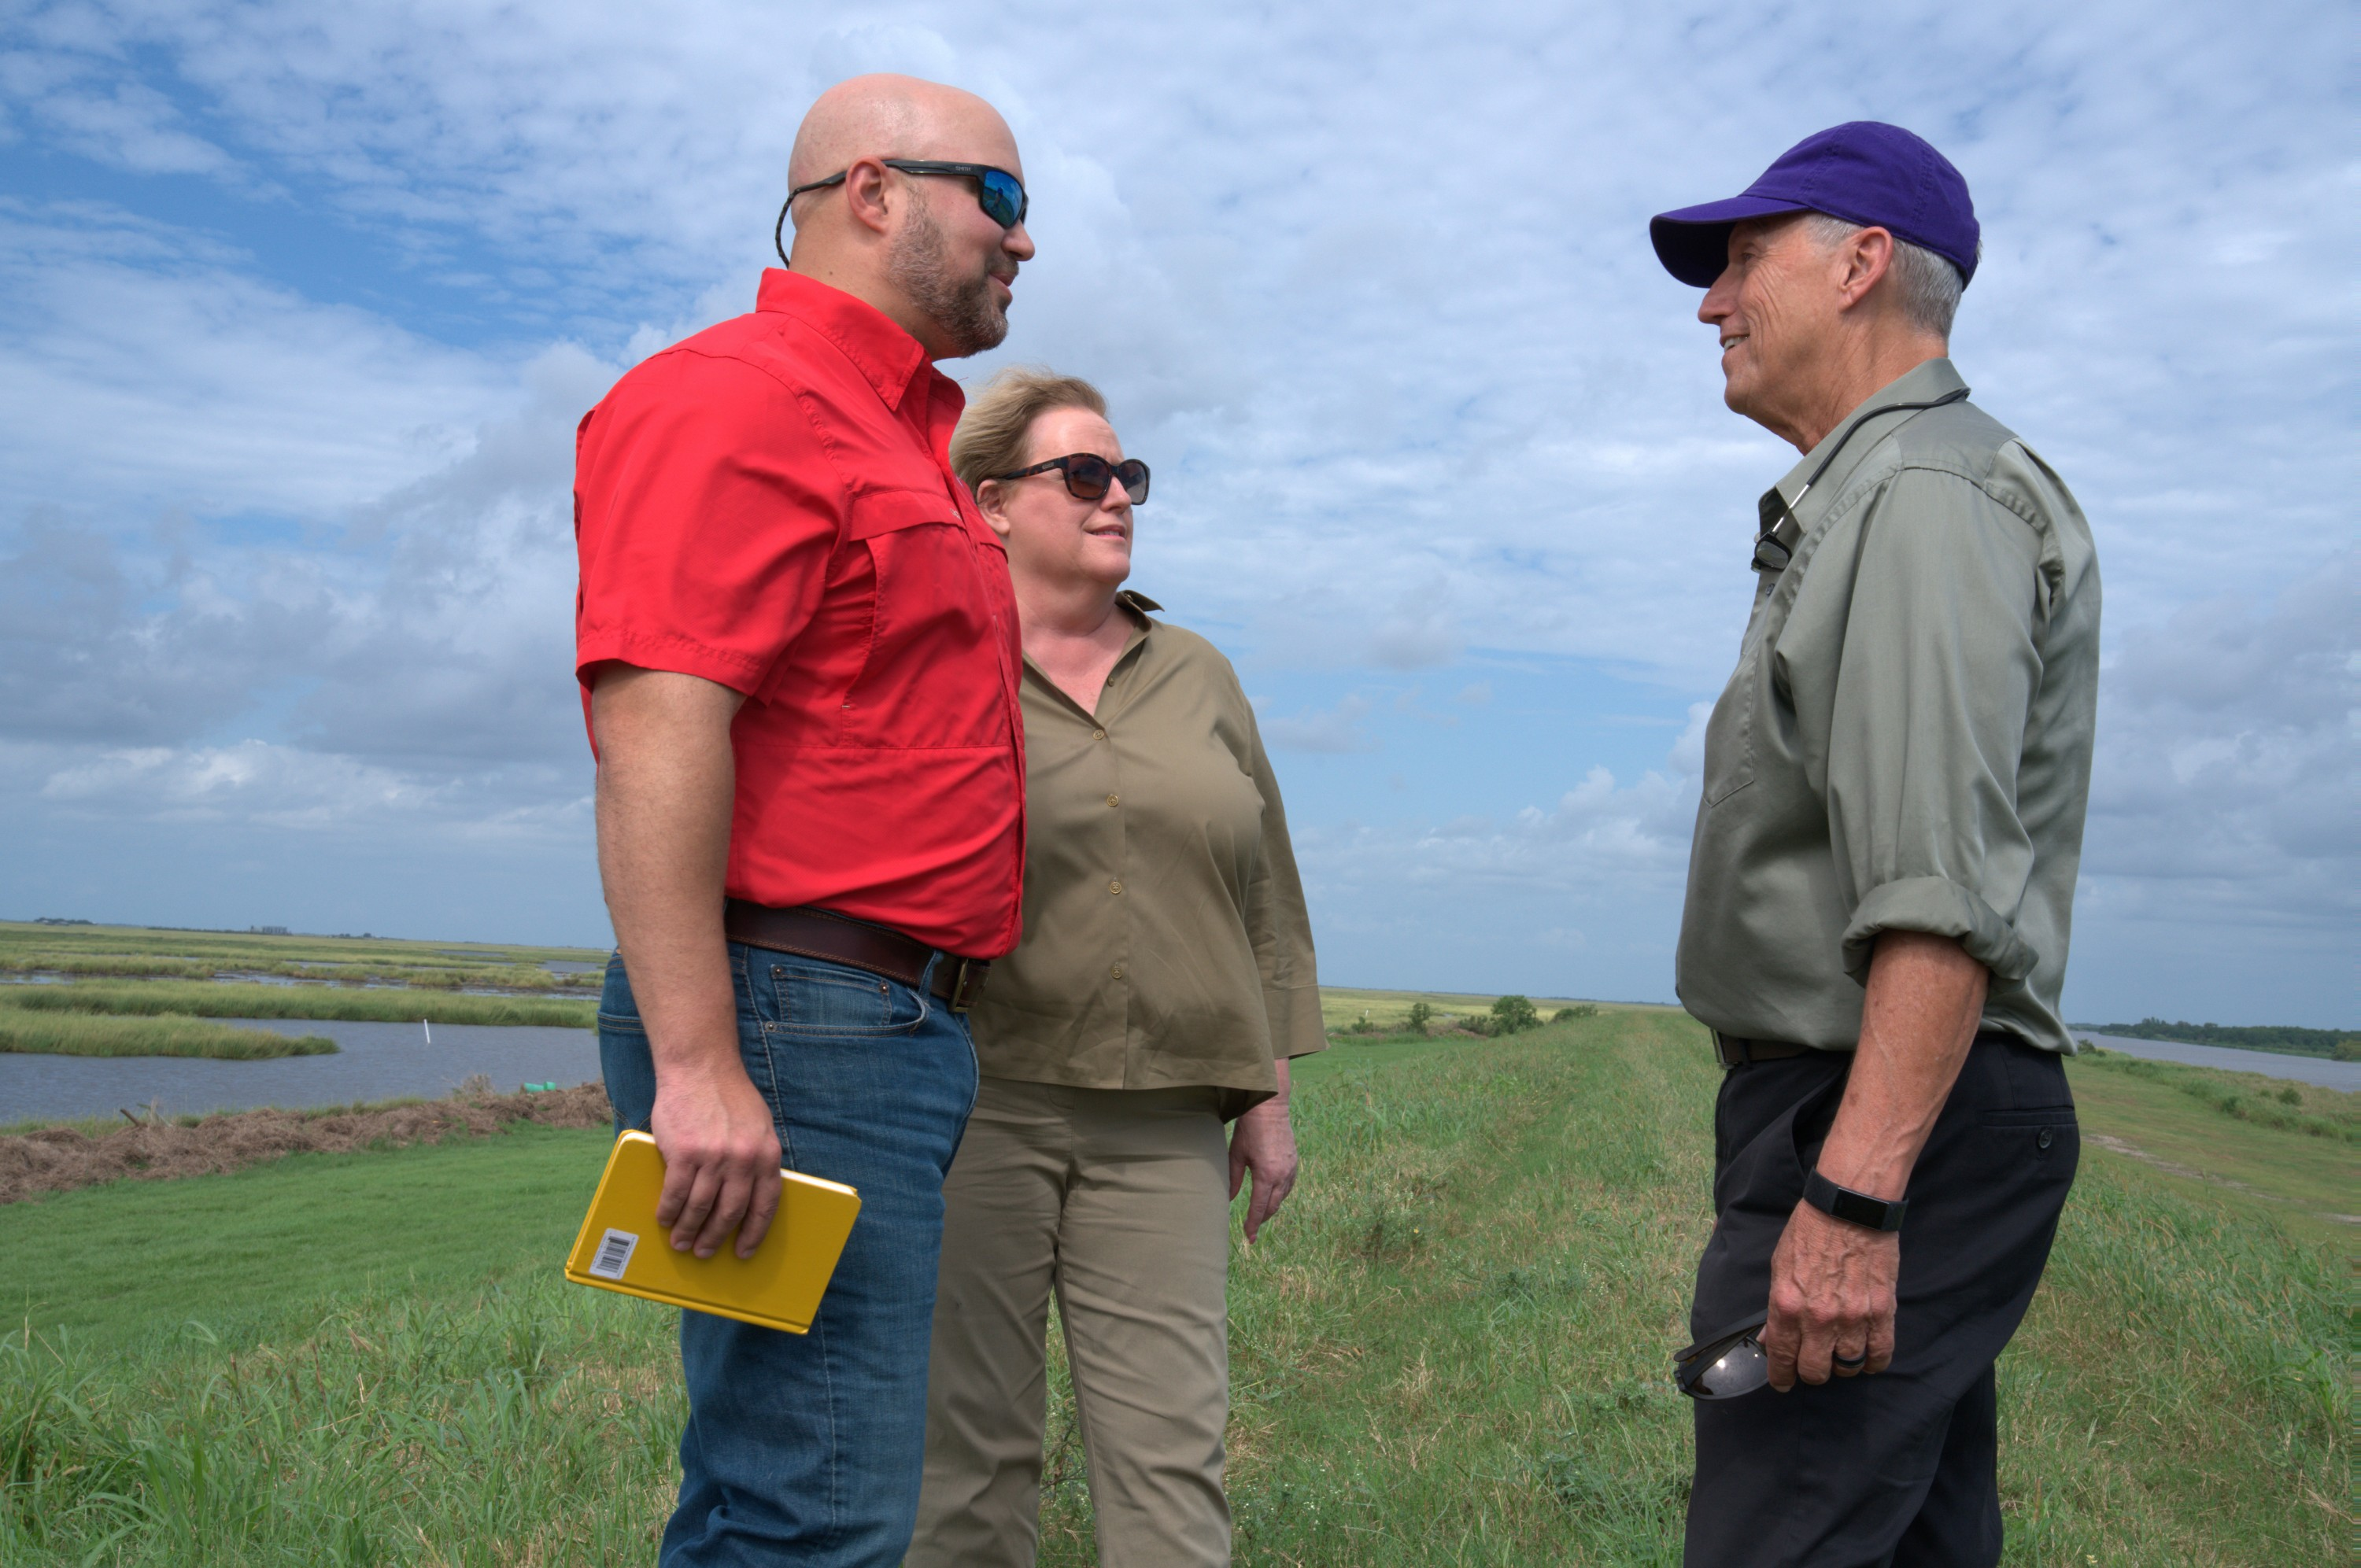 Three people talking outside, marshland in background